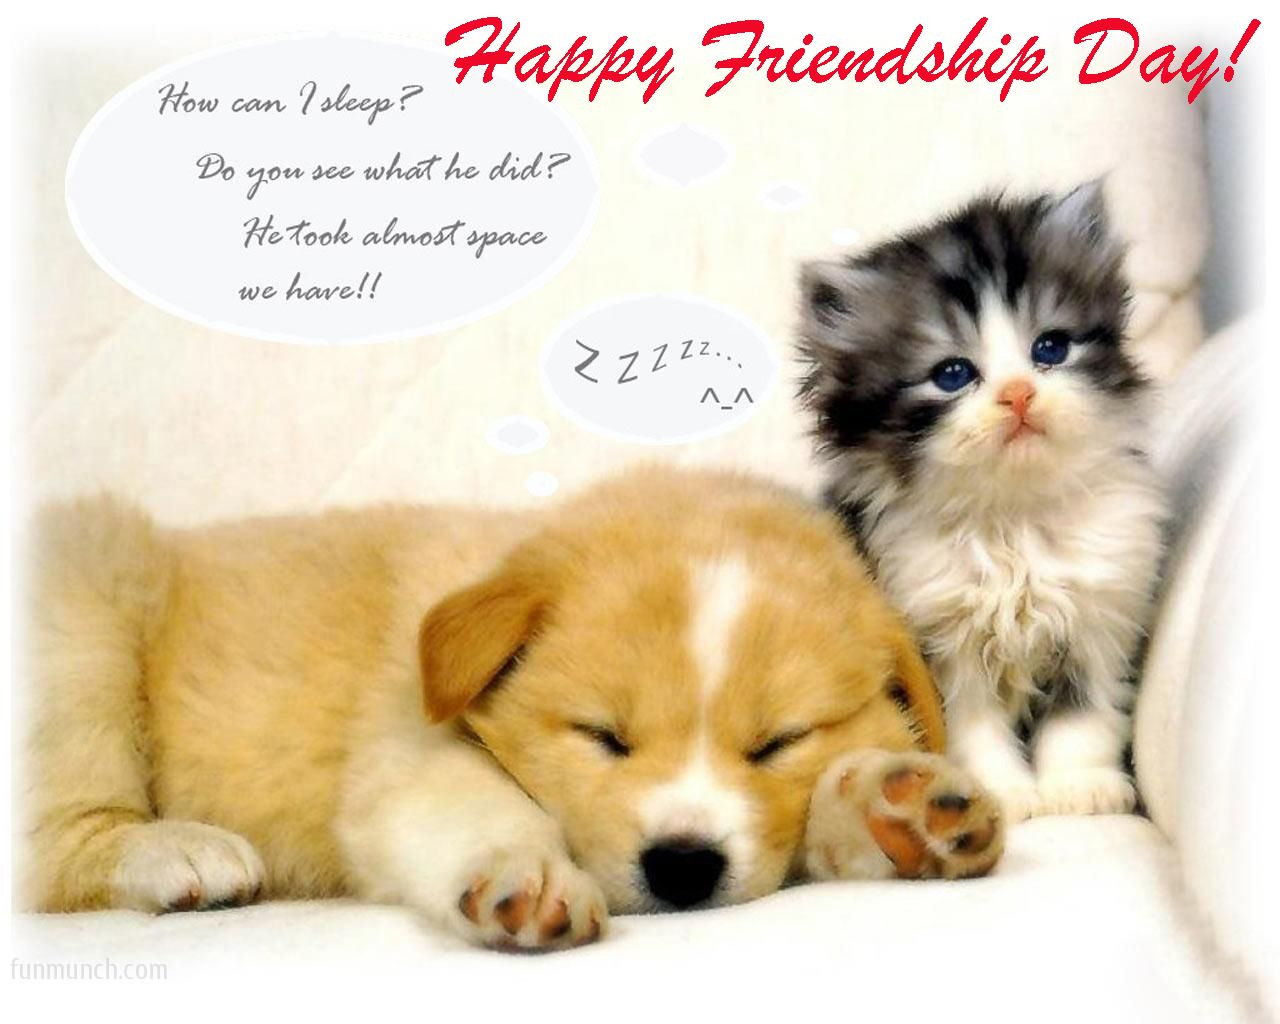 Quotes About Dogs And Friendship Beautiful Friendship Day Images  Happy Friendship Day  Pinterest